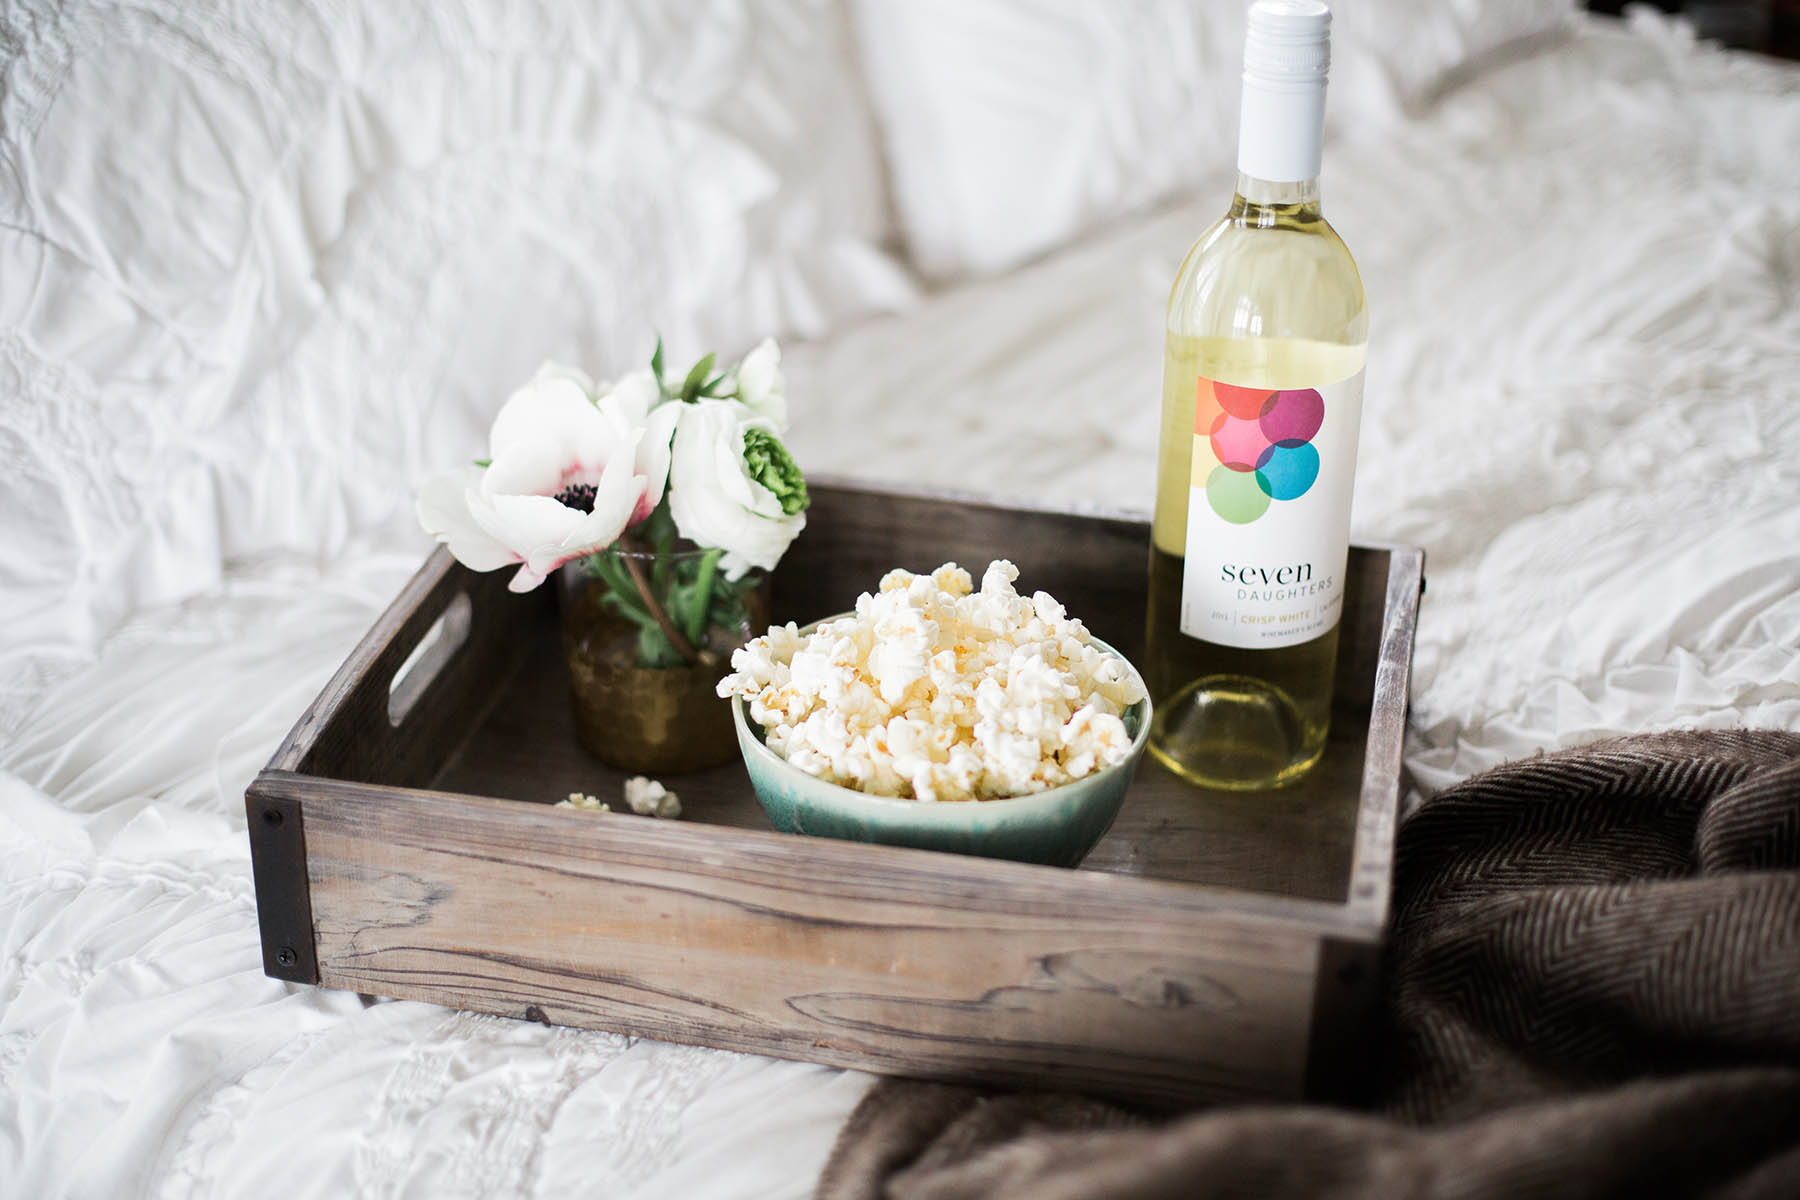 tray of popcorn and seven daughters wine on bed for movie night